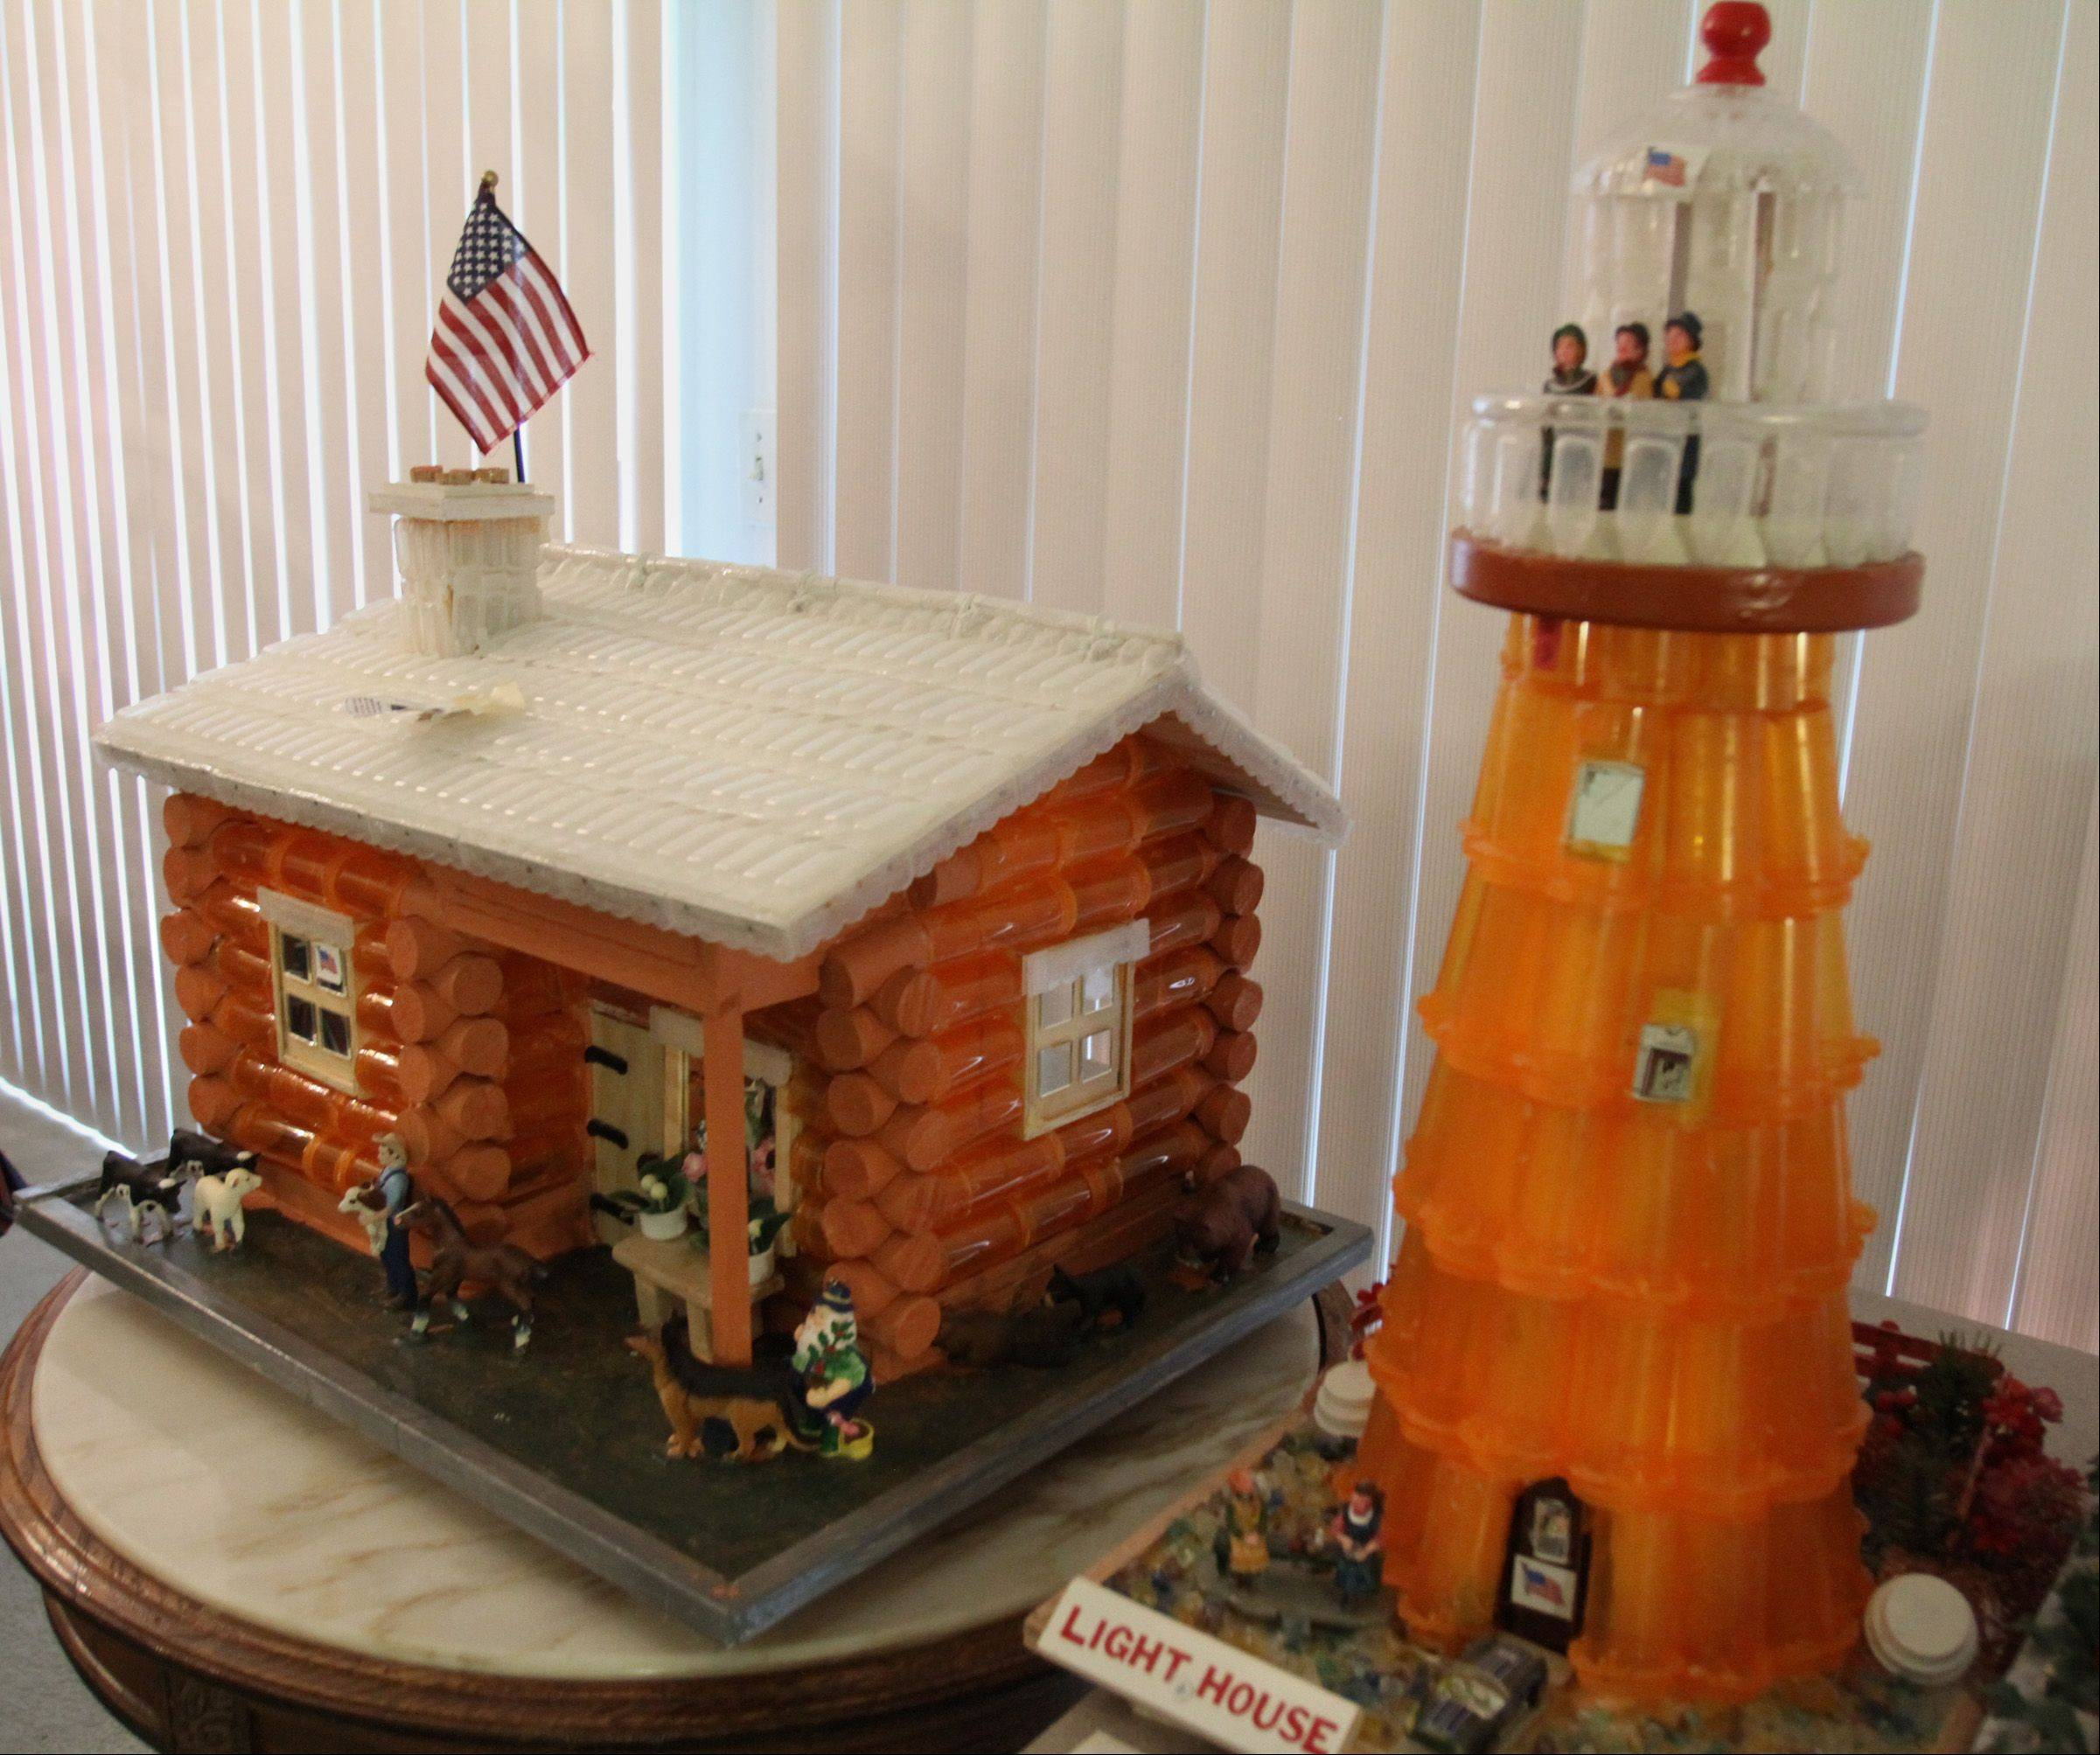 Instead of focusing on their health problems, 93-year-old Jake Joseph uses the hundreds of empty pill bottles compiled by his wife, Beatrice, to build this log cabin, lighthouse and other one-of-a-kind creations in the couple's condo in Prospect Heights.